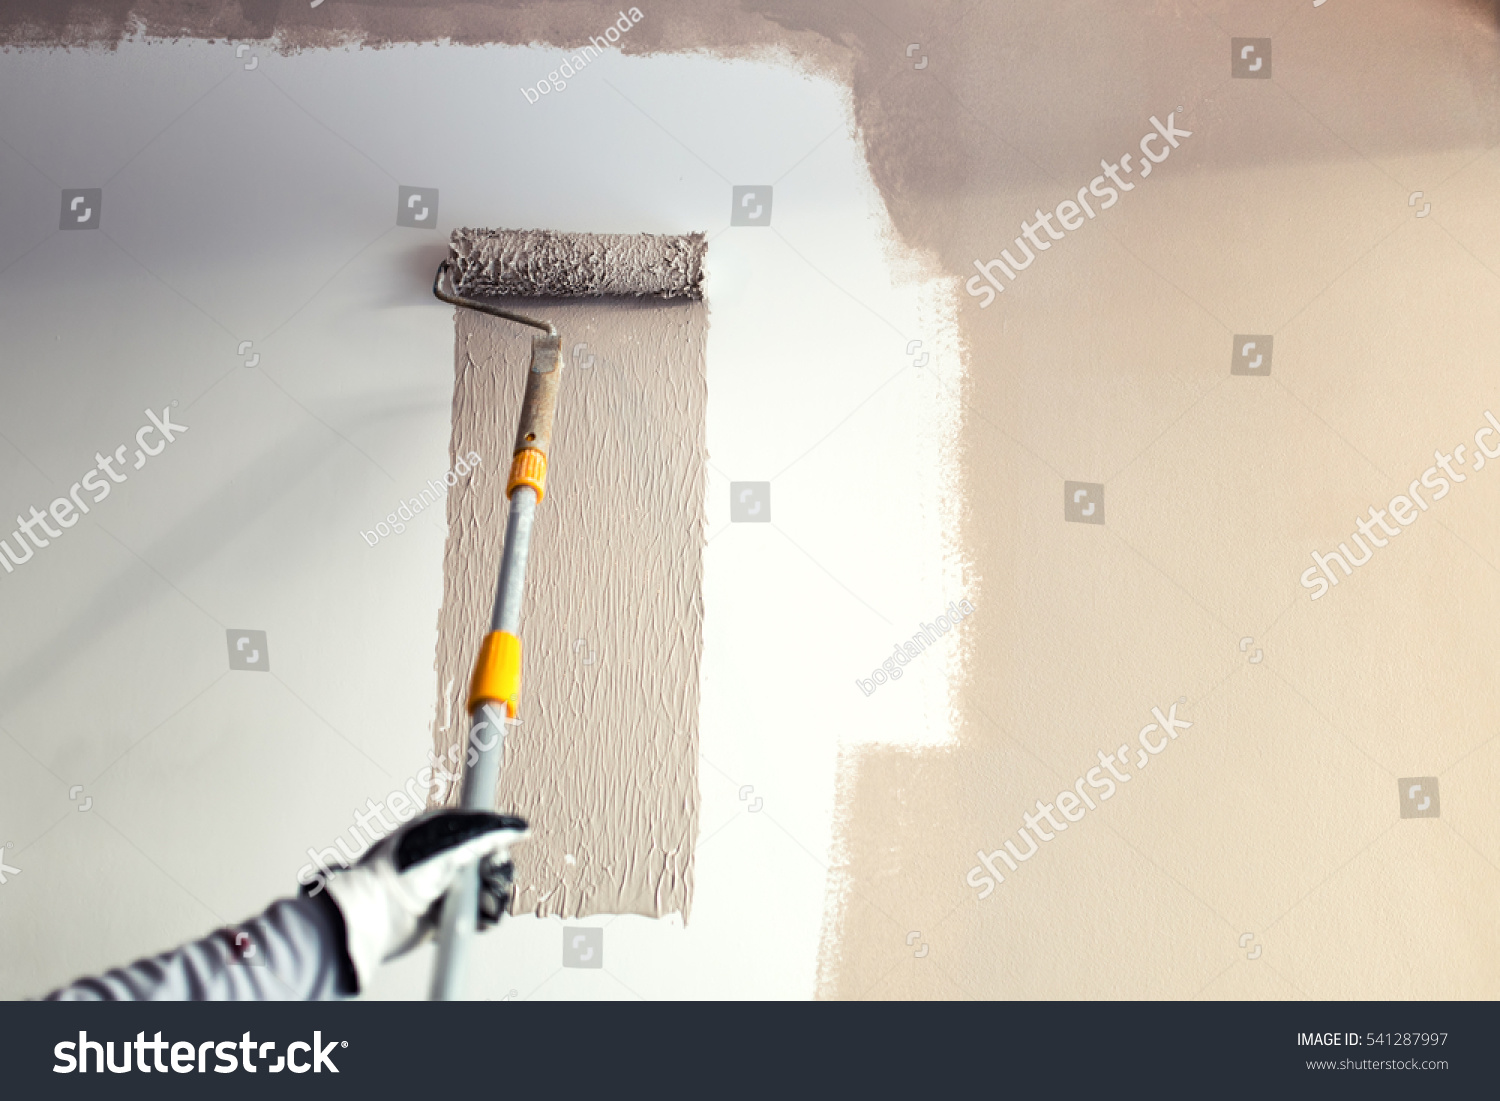 Close details painting walls industrial worker stock photo for Wall painting utensils